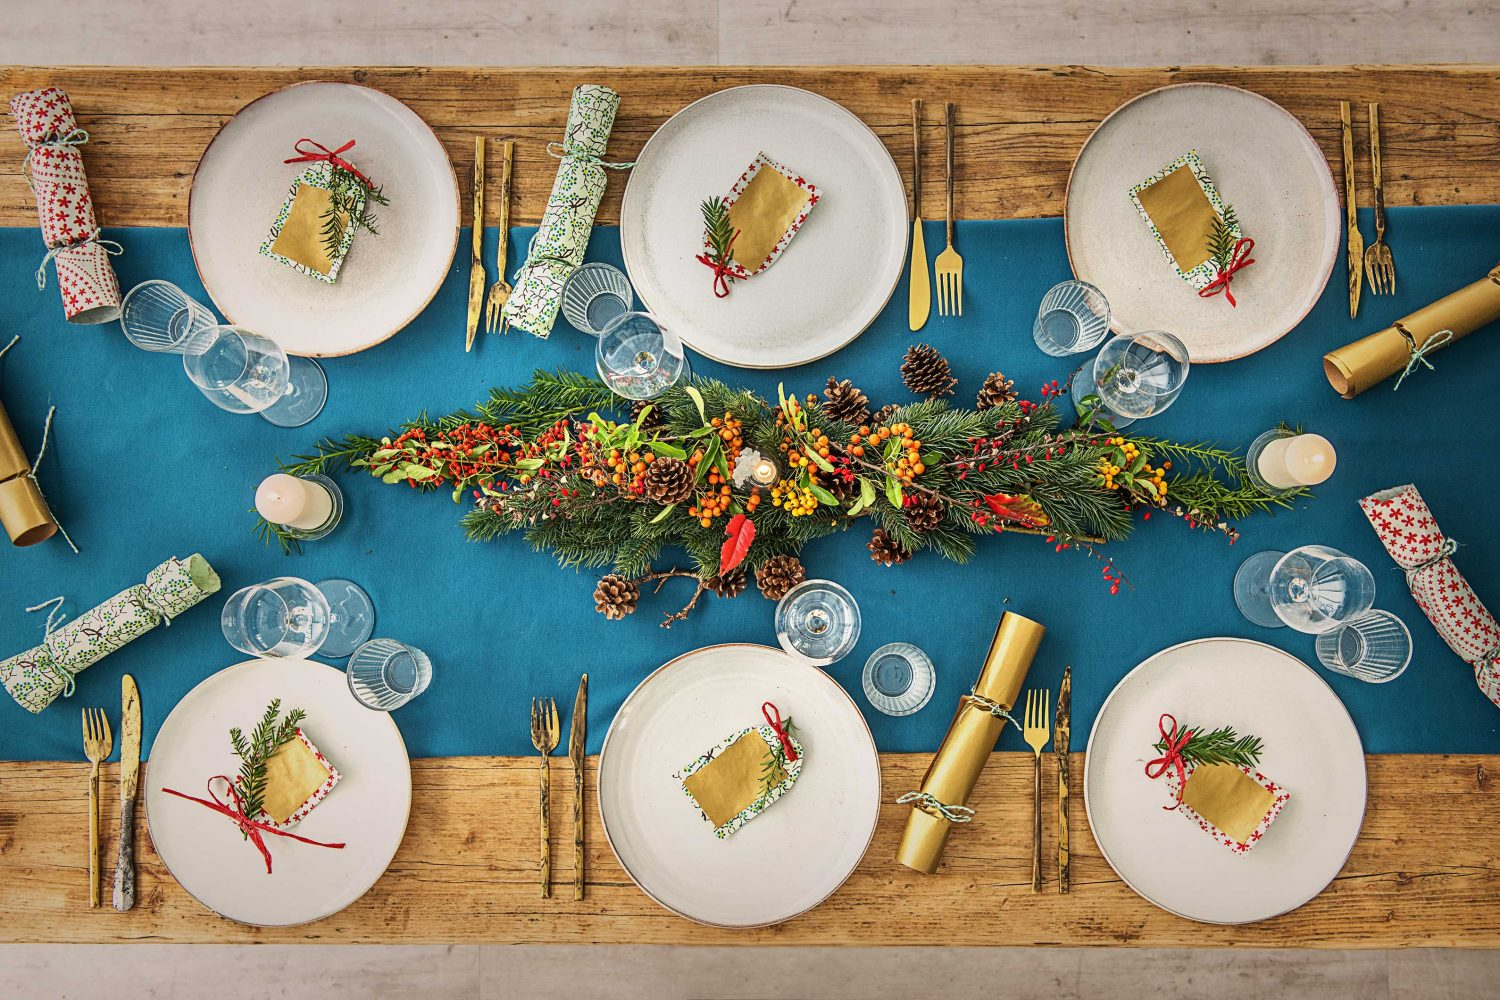 Christmas Day Dinner – getting ahead of the game